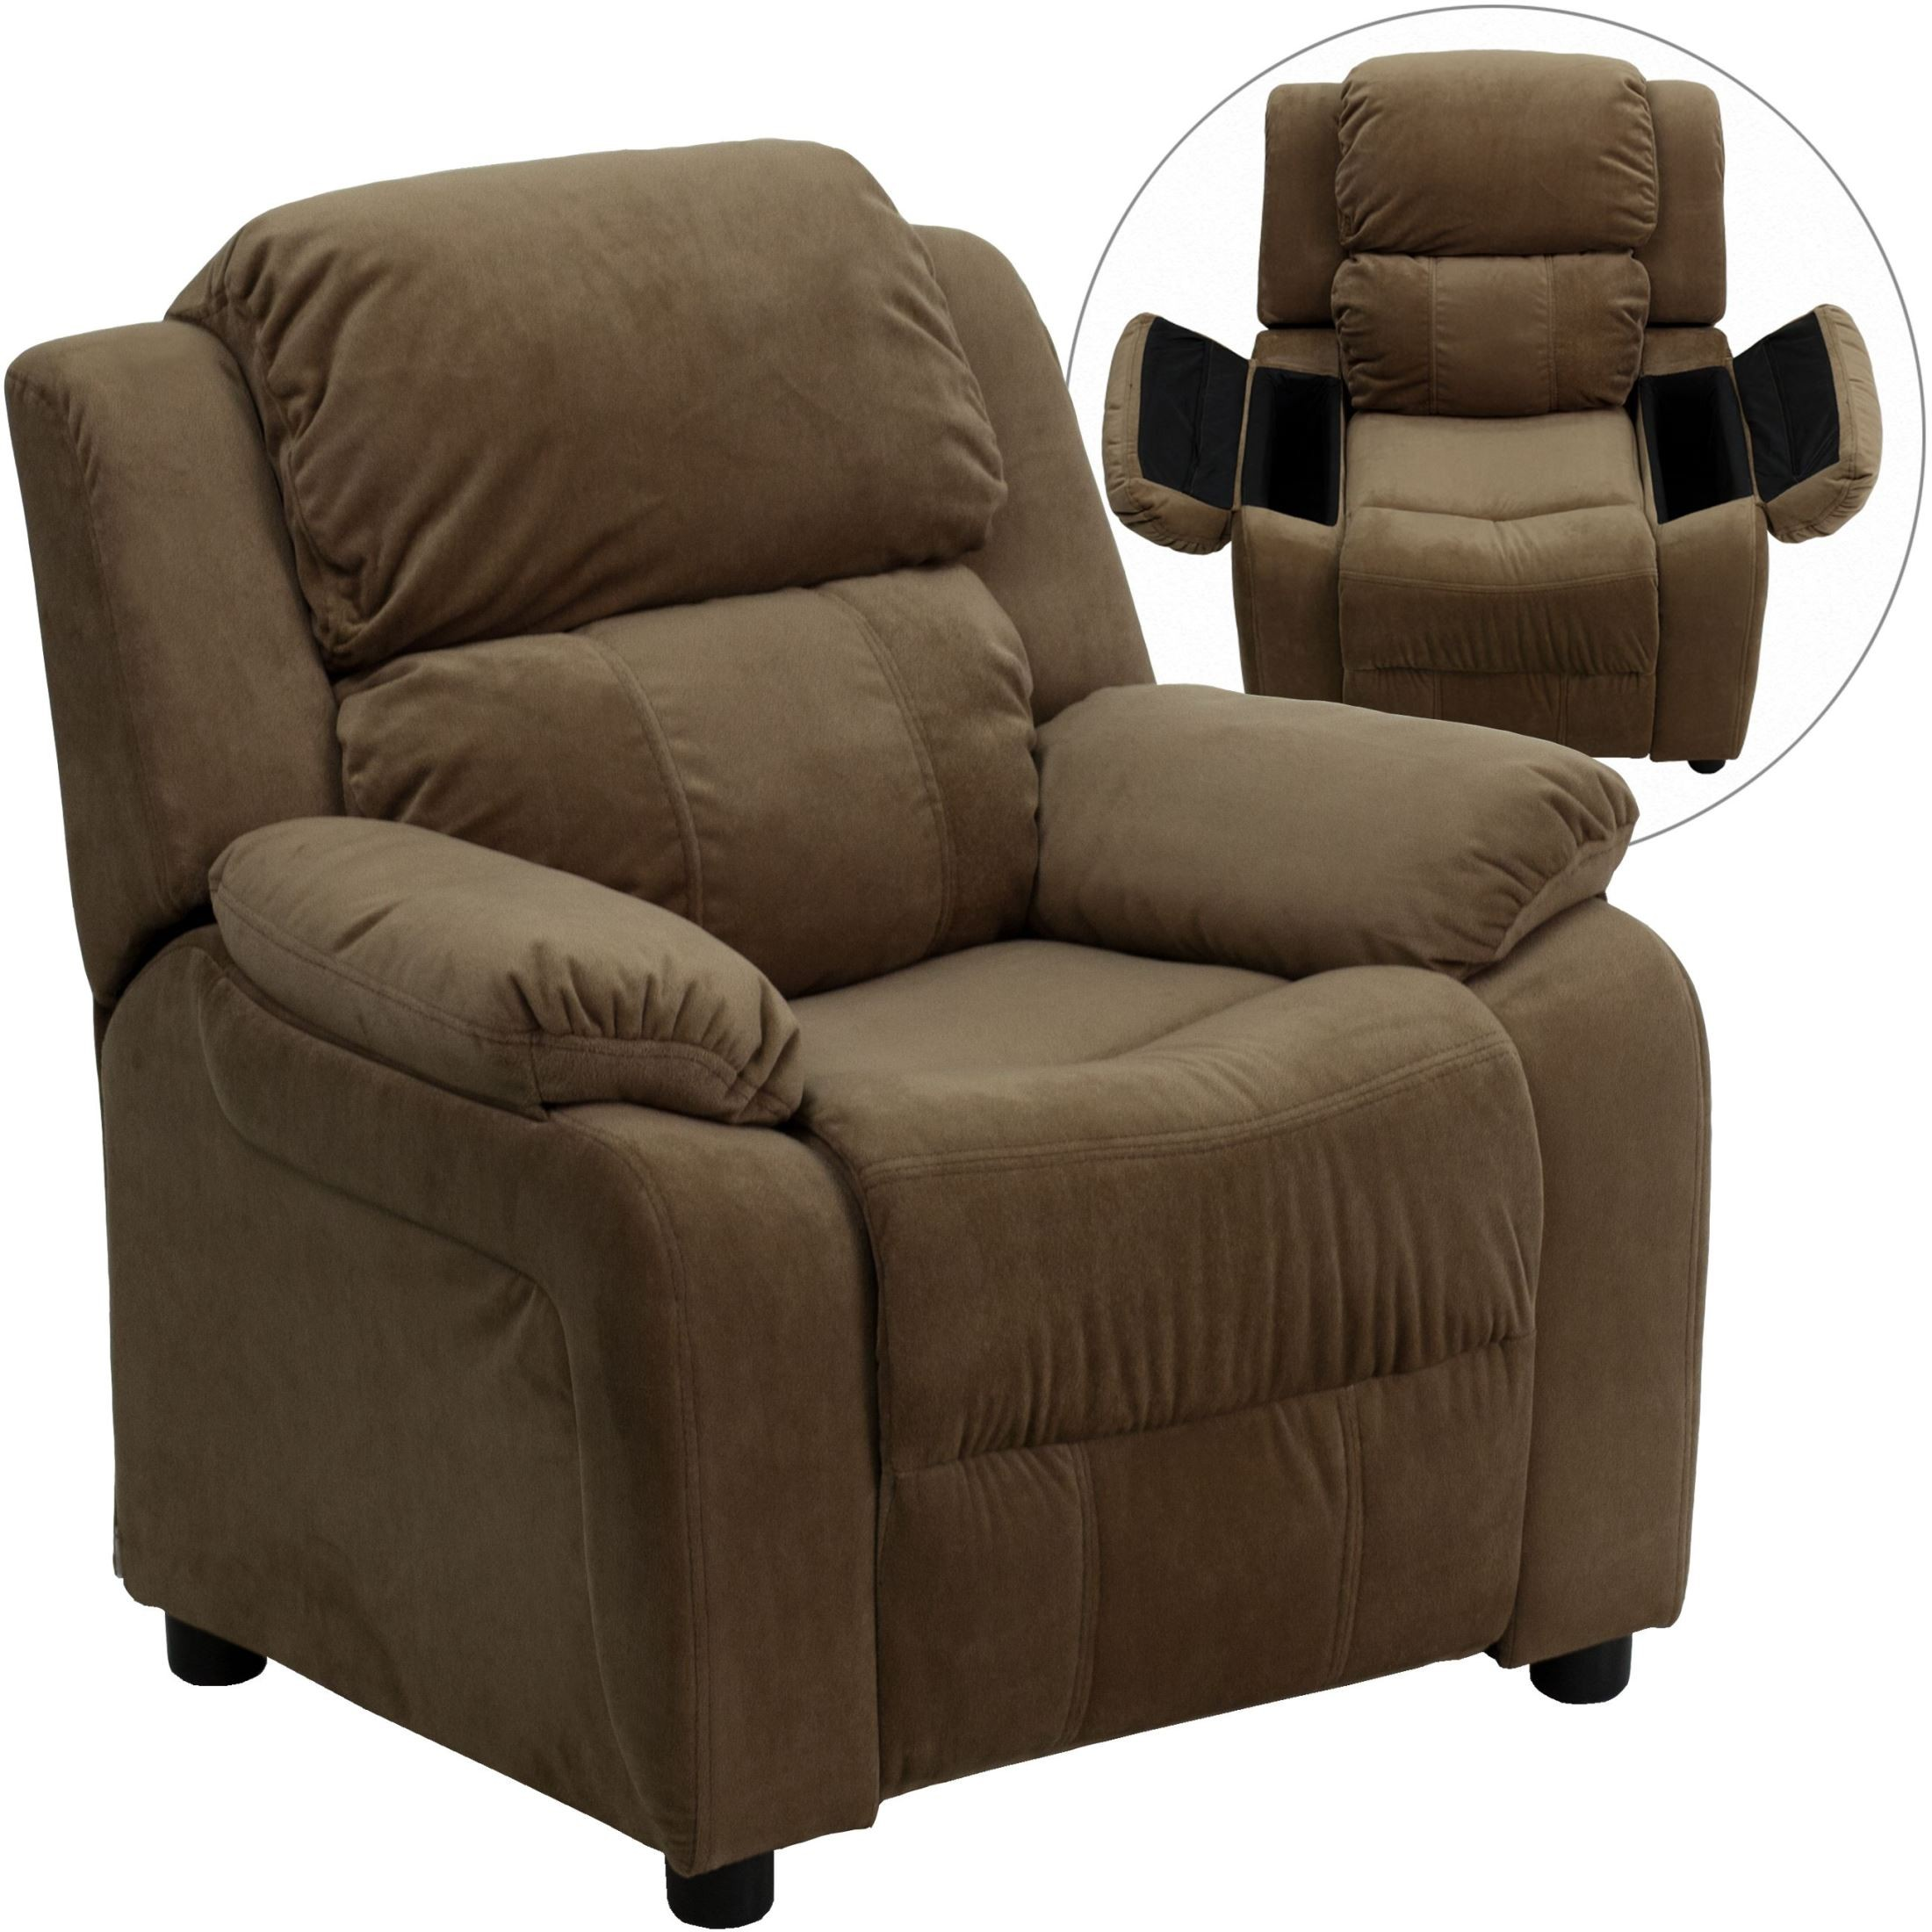 Toddler Soft Chair Deluxe Heavily Padded Brown Kids Storage Arm Recliner From